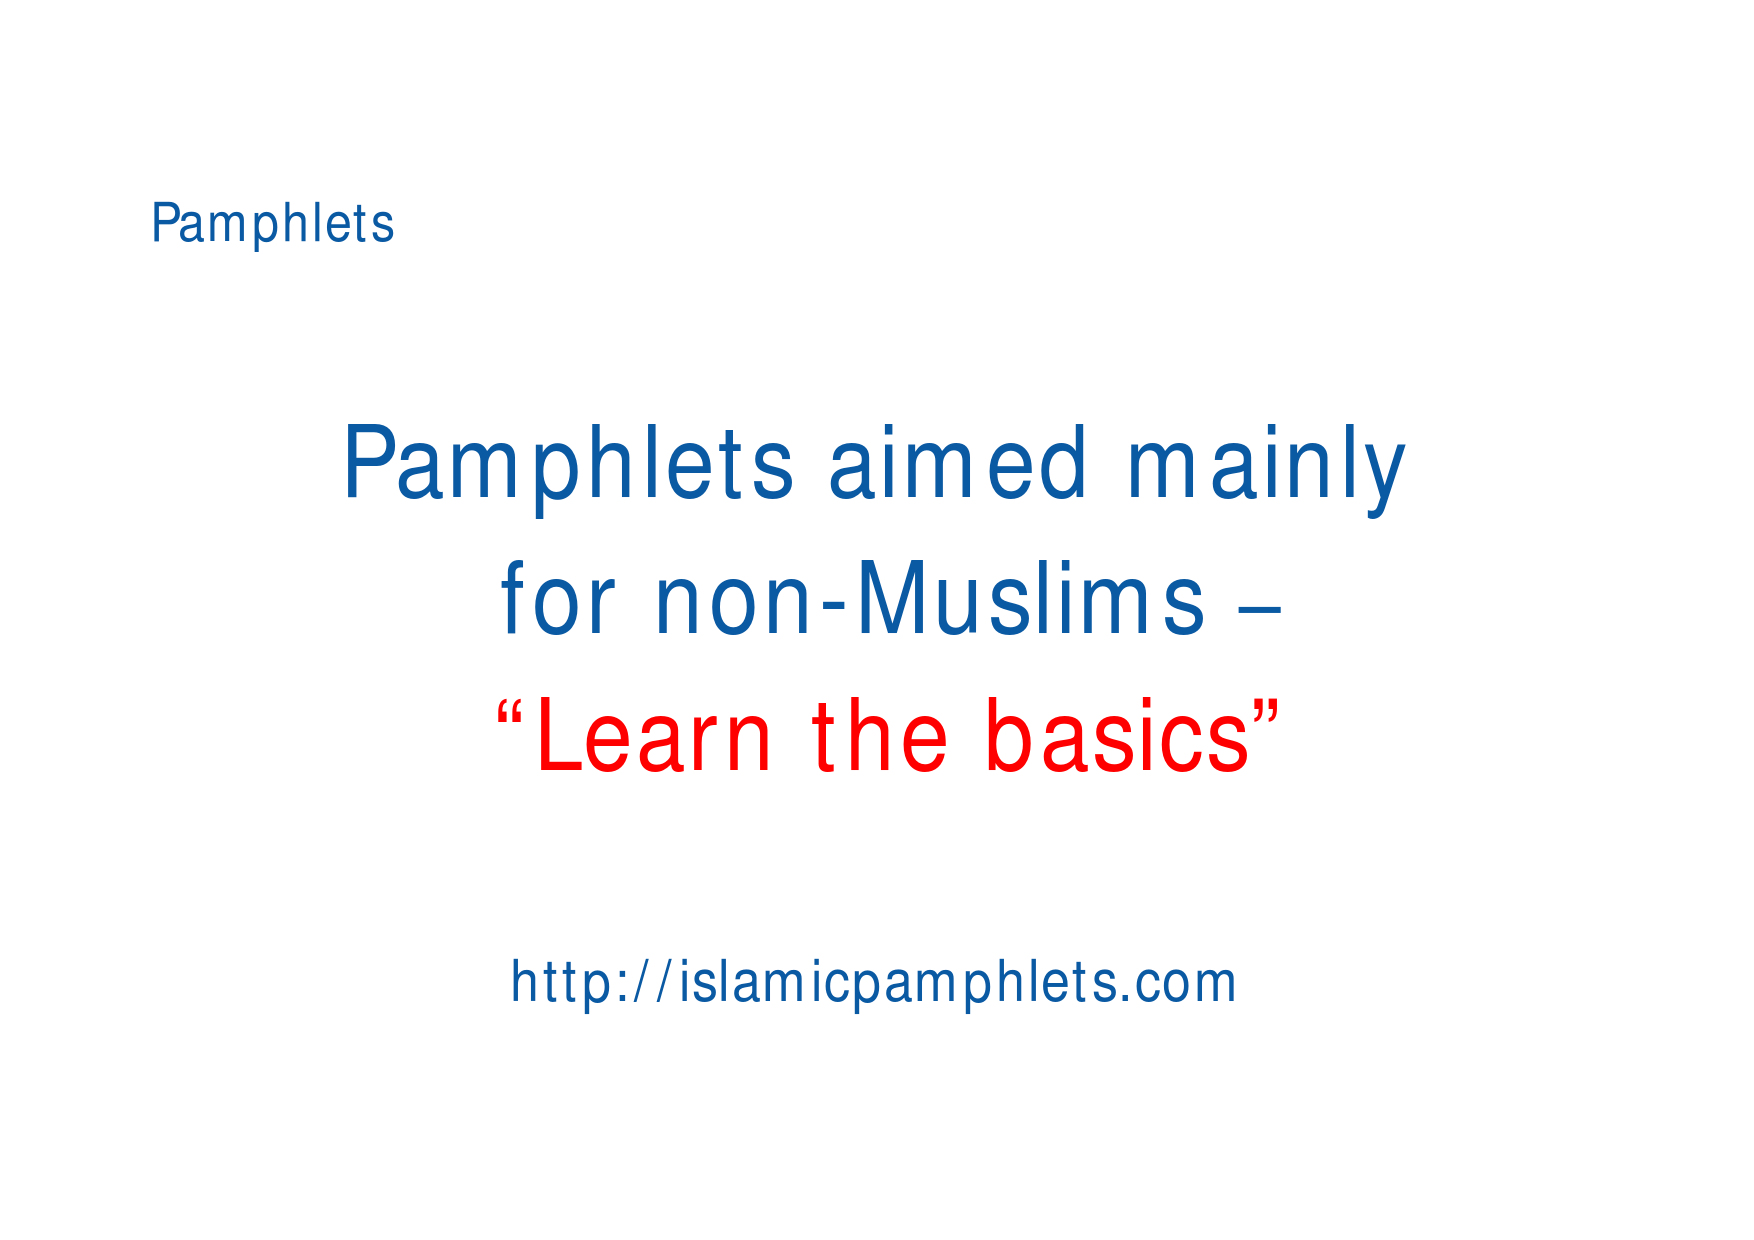 Pamphlets aimed mainly for non-Muslims – Learn the basics